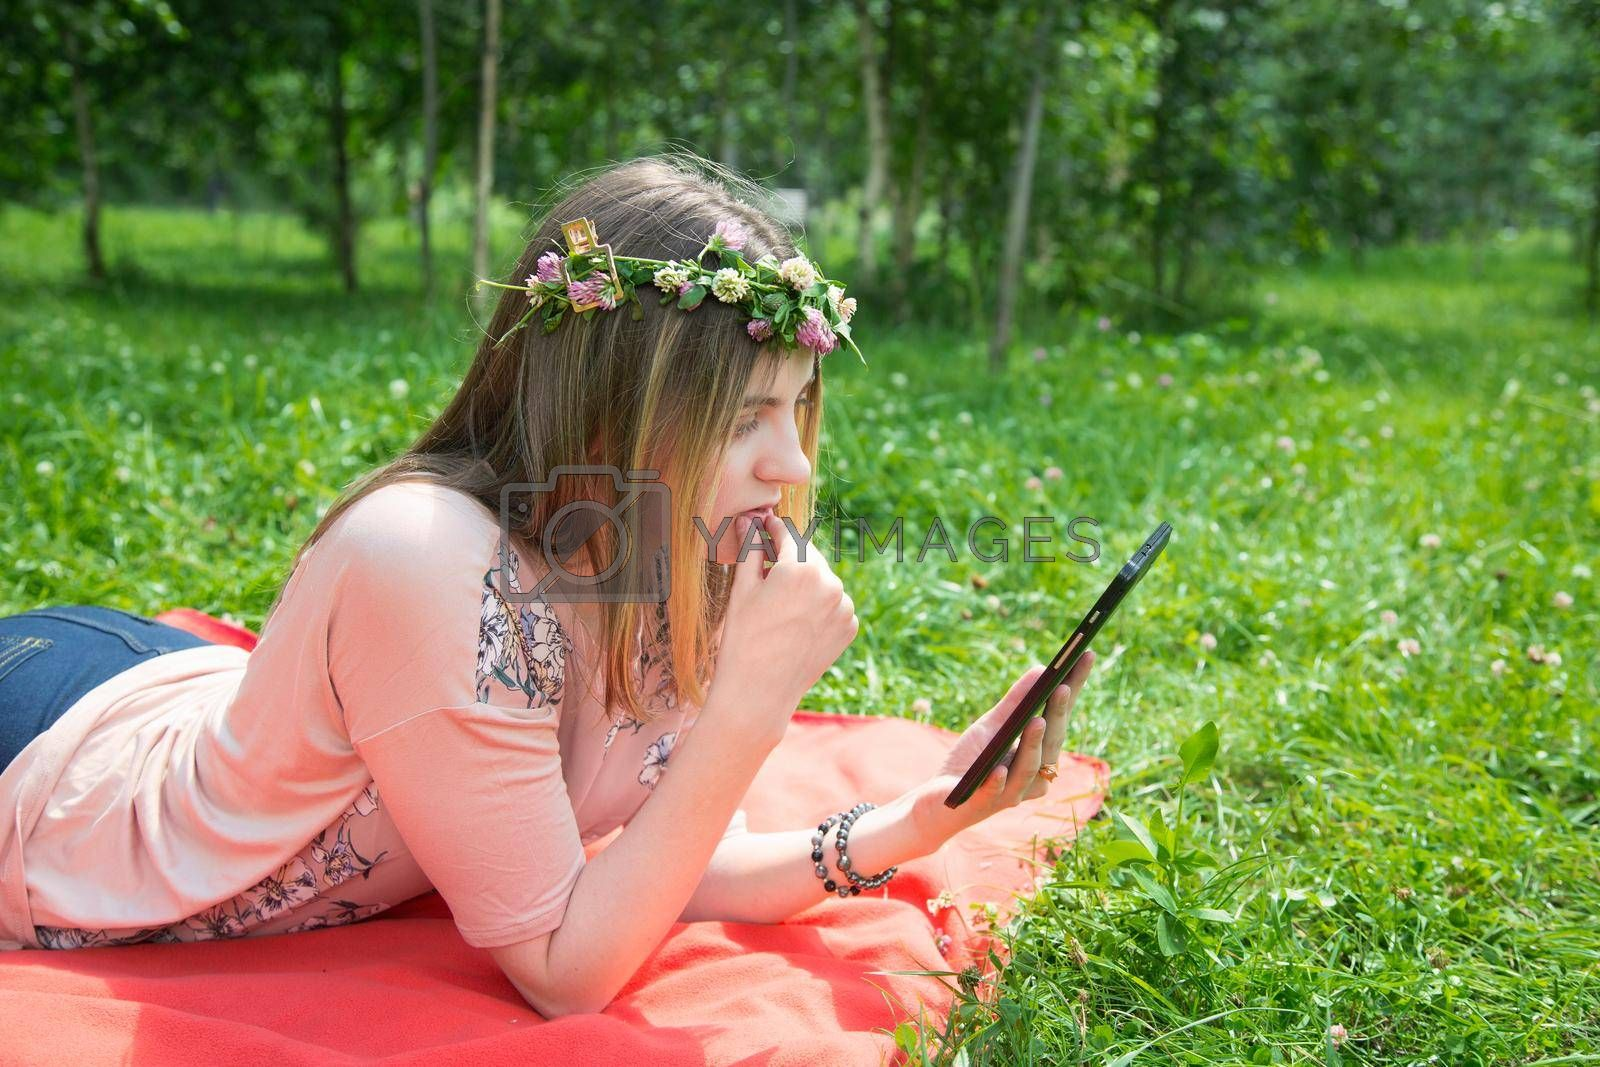 A young girl of 20 years old Caucasian appearance wary with apprehension looks into her mobile phone, sitting on the lawn in the park on a summer day. The girl is dressed in a floral T-shirt and jeans